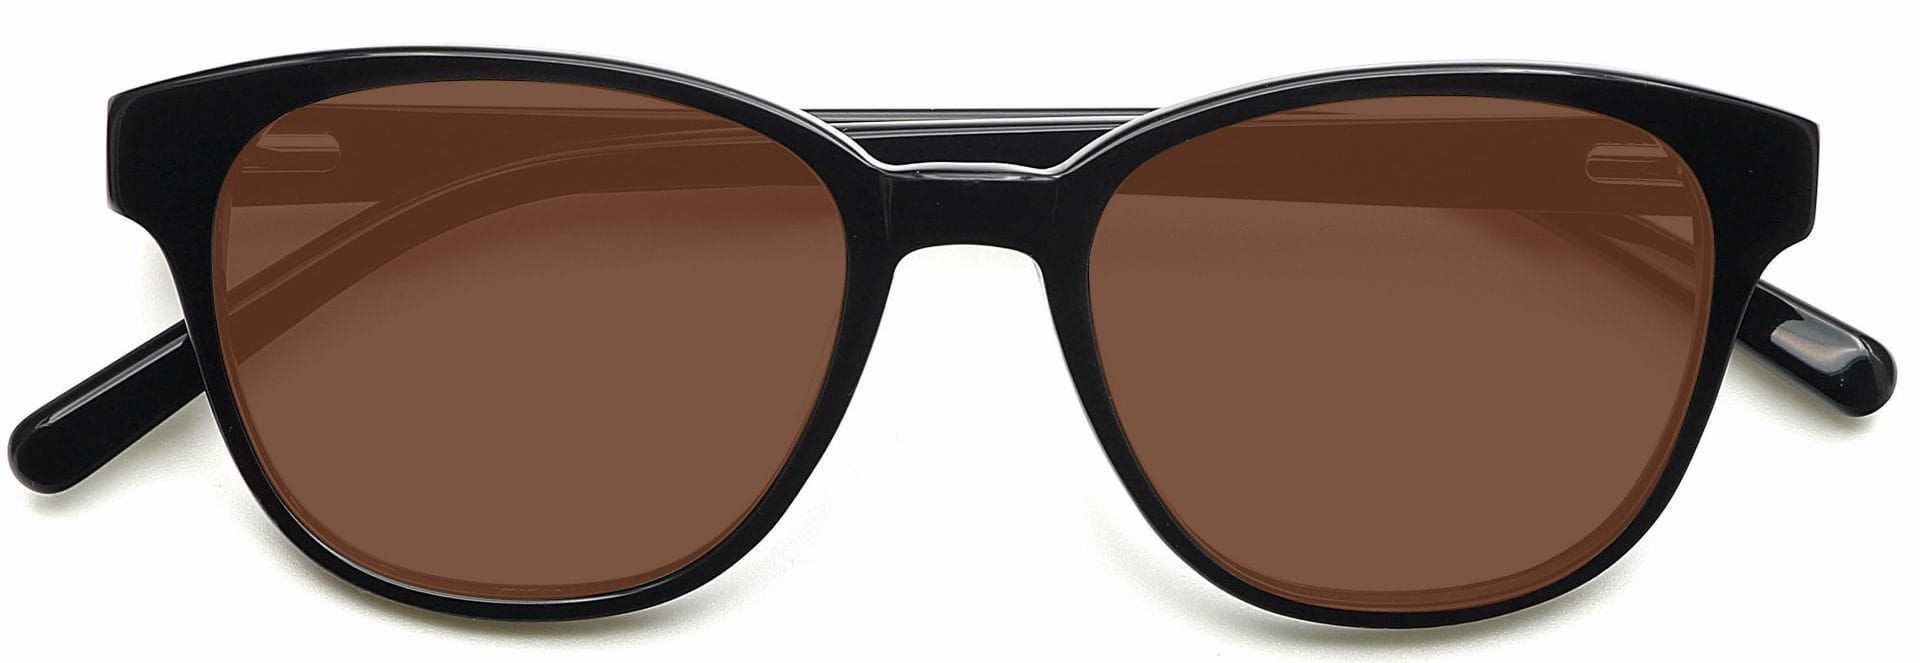 Soleil Classic Square Reading Sunglasses - Black Frame With Brown Lenses